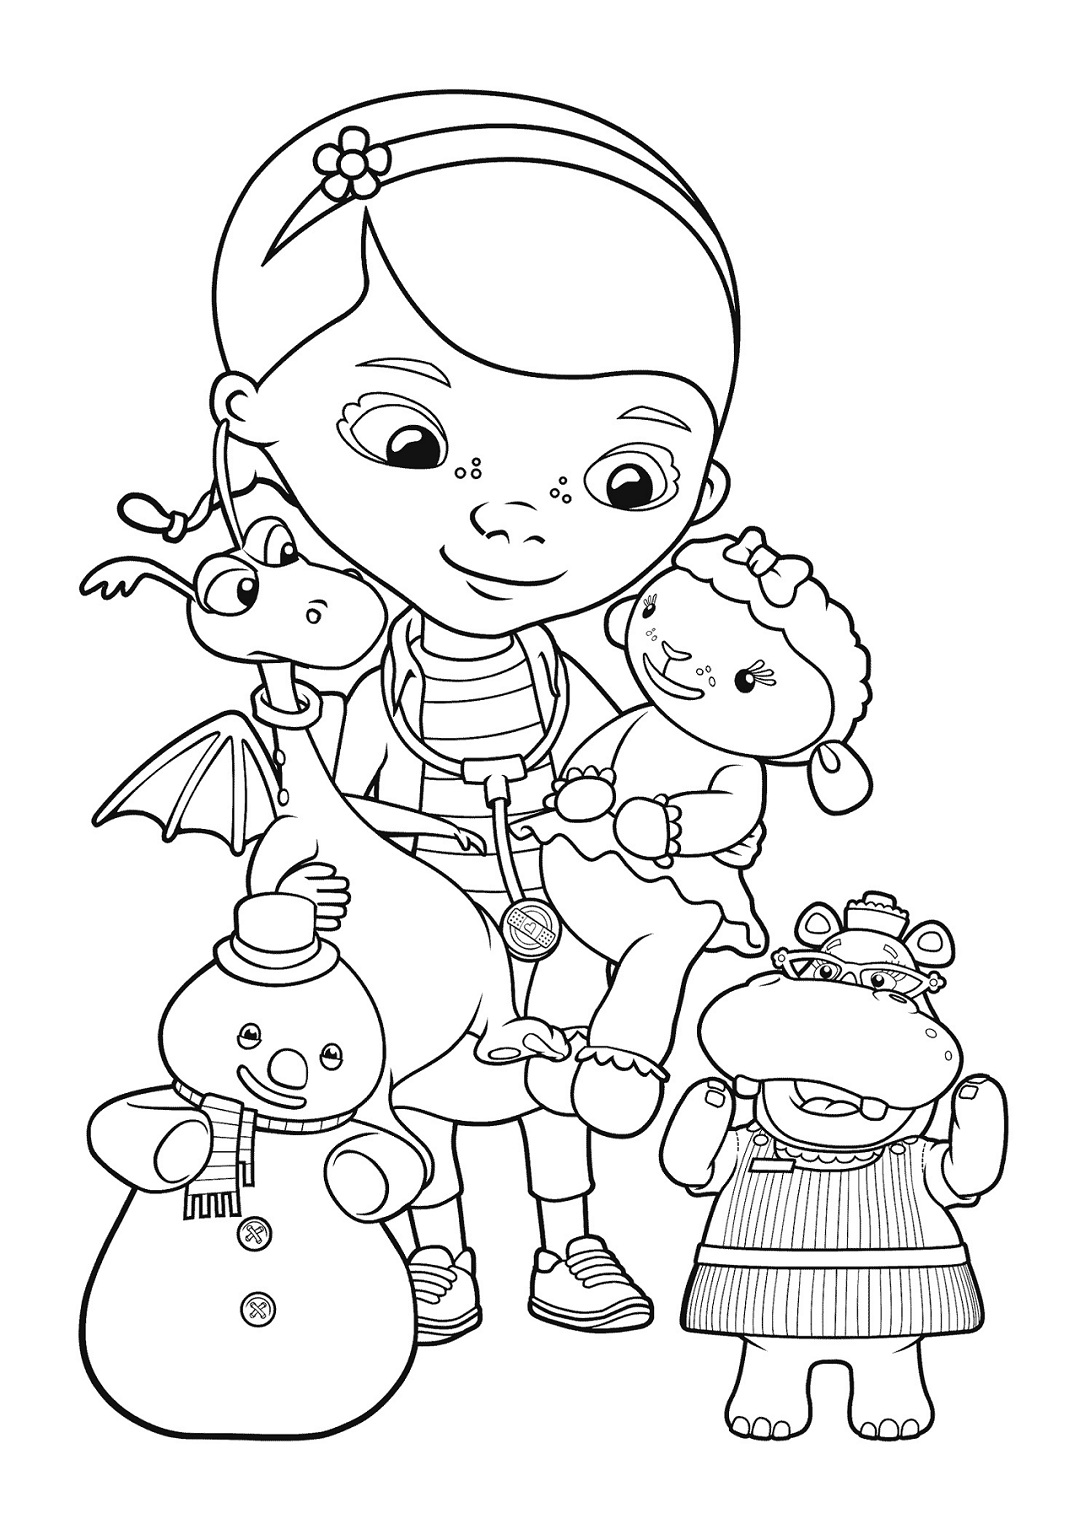 free doctor coloring pages - photo#36